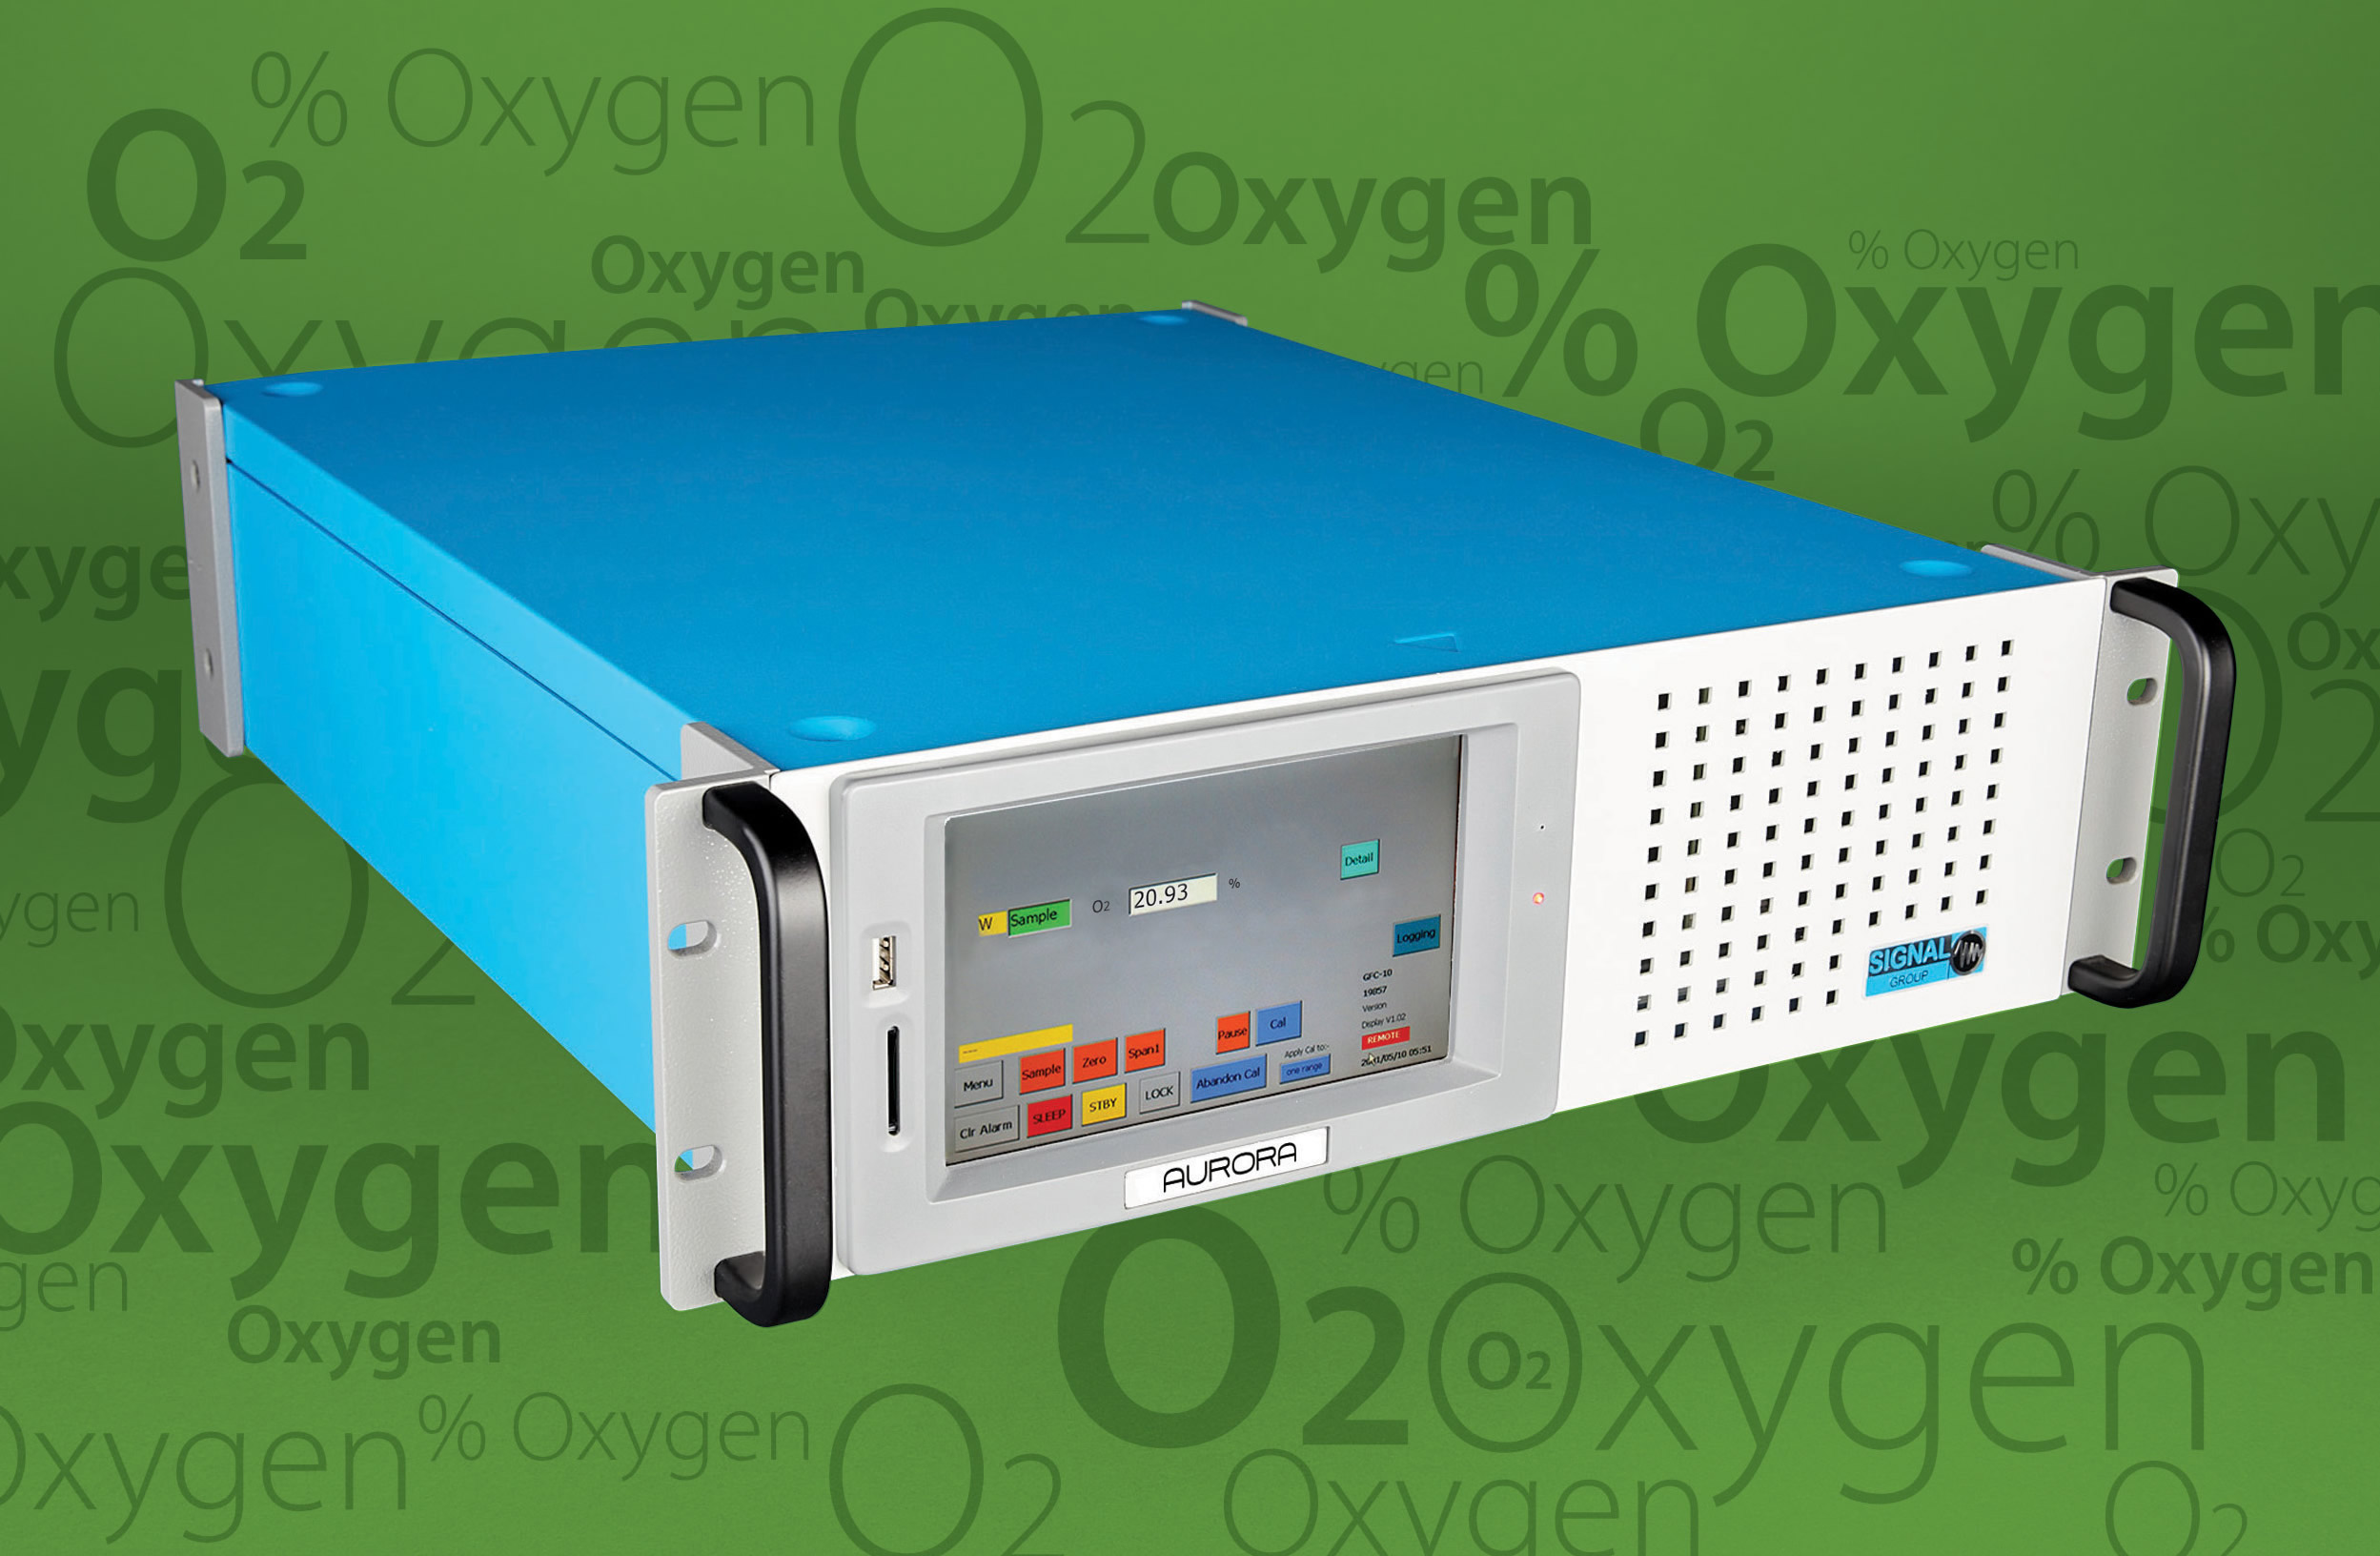 Oxygen Analyser features remote access capability for off-site configuration